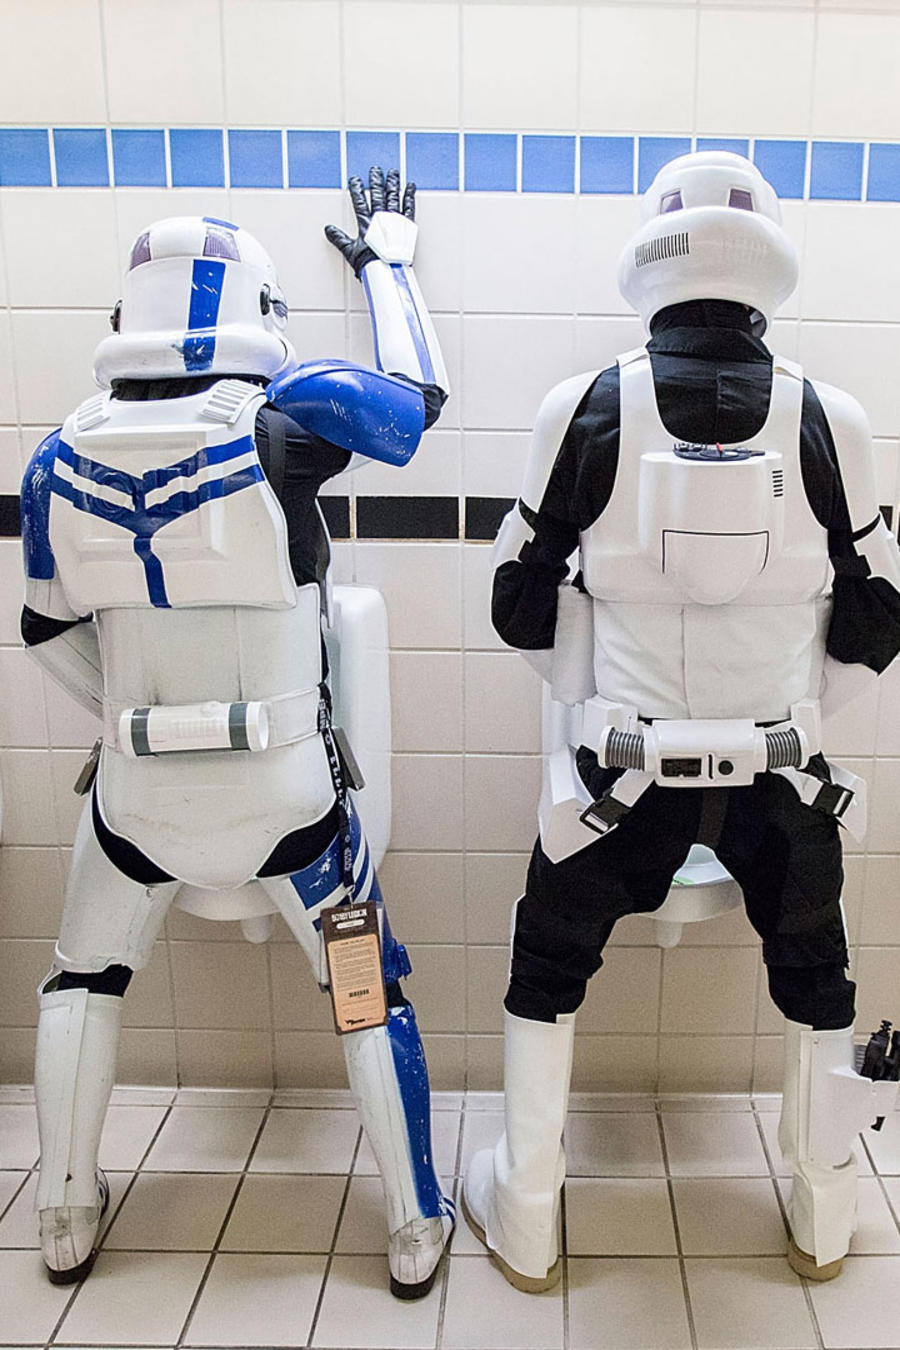 dos stormtroopers